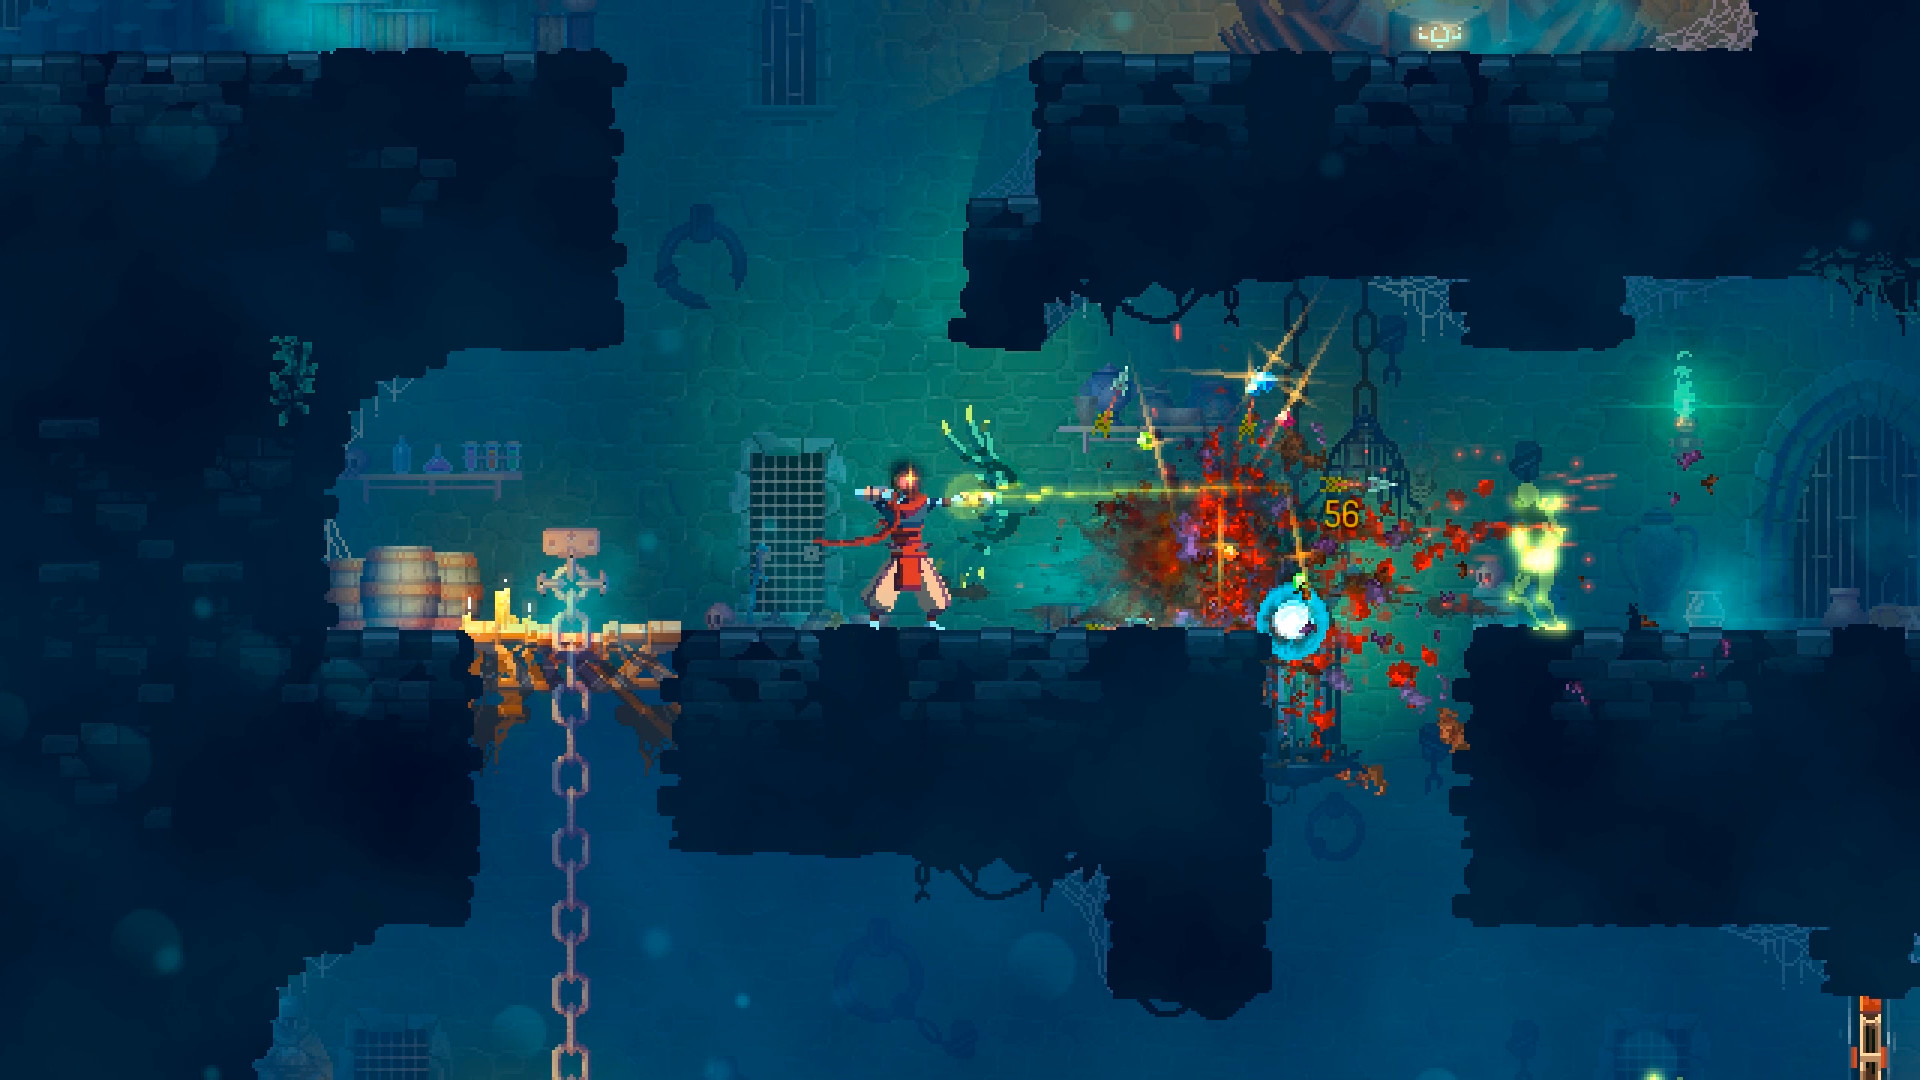 Dead Cells is adding new optional features to reduce ragequitting